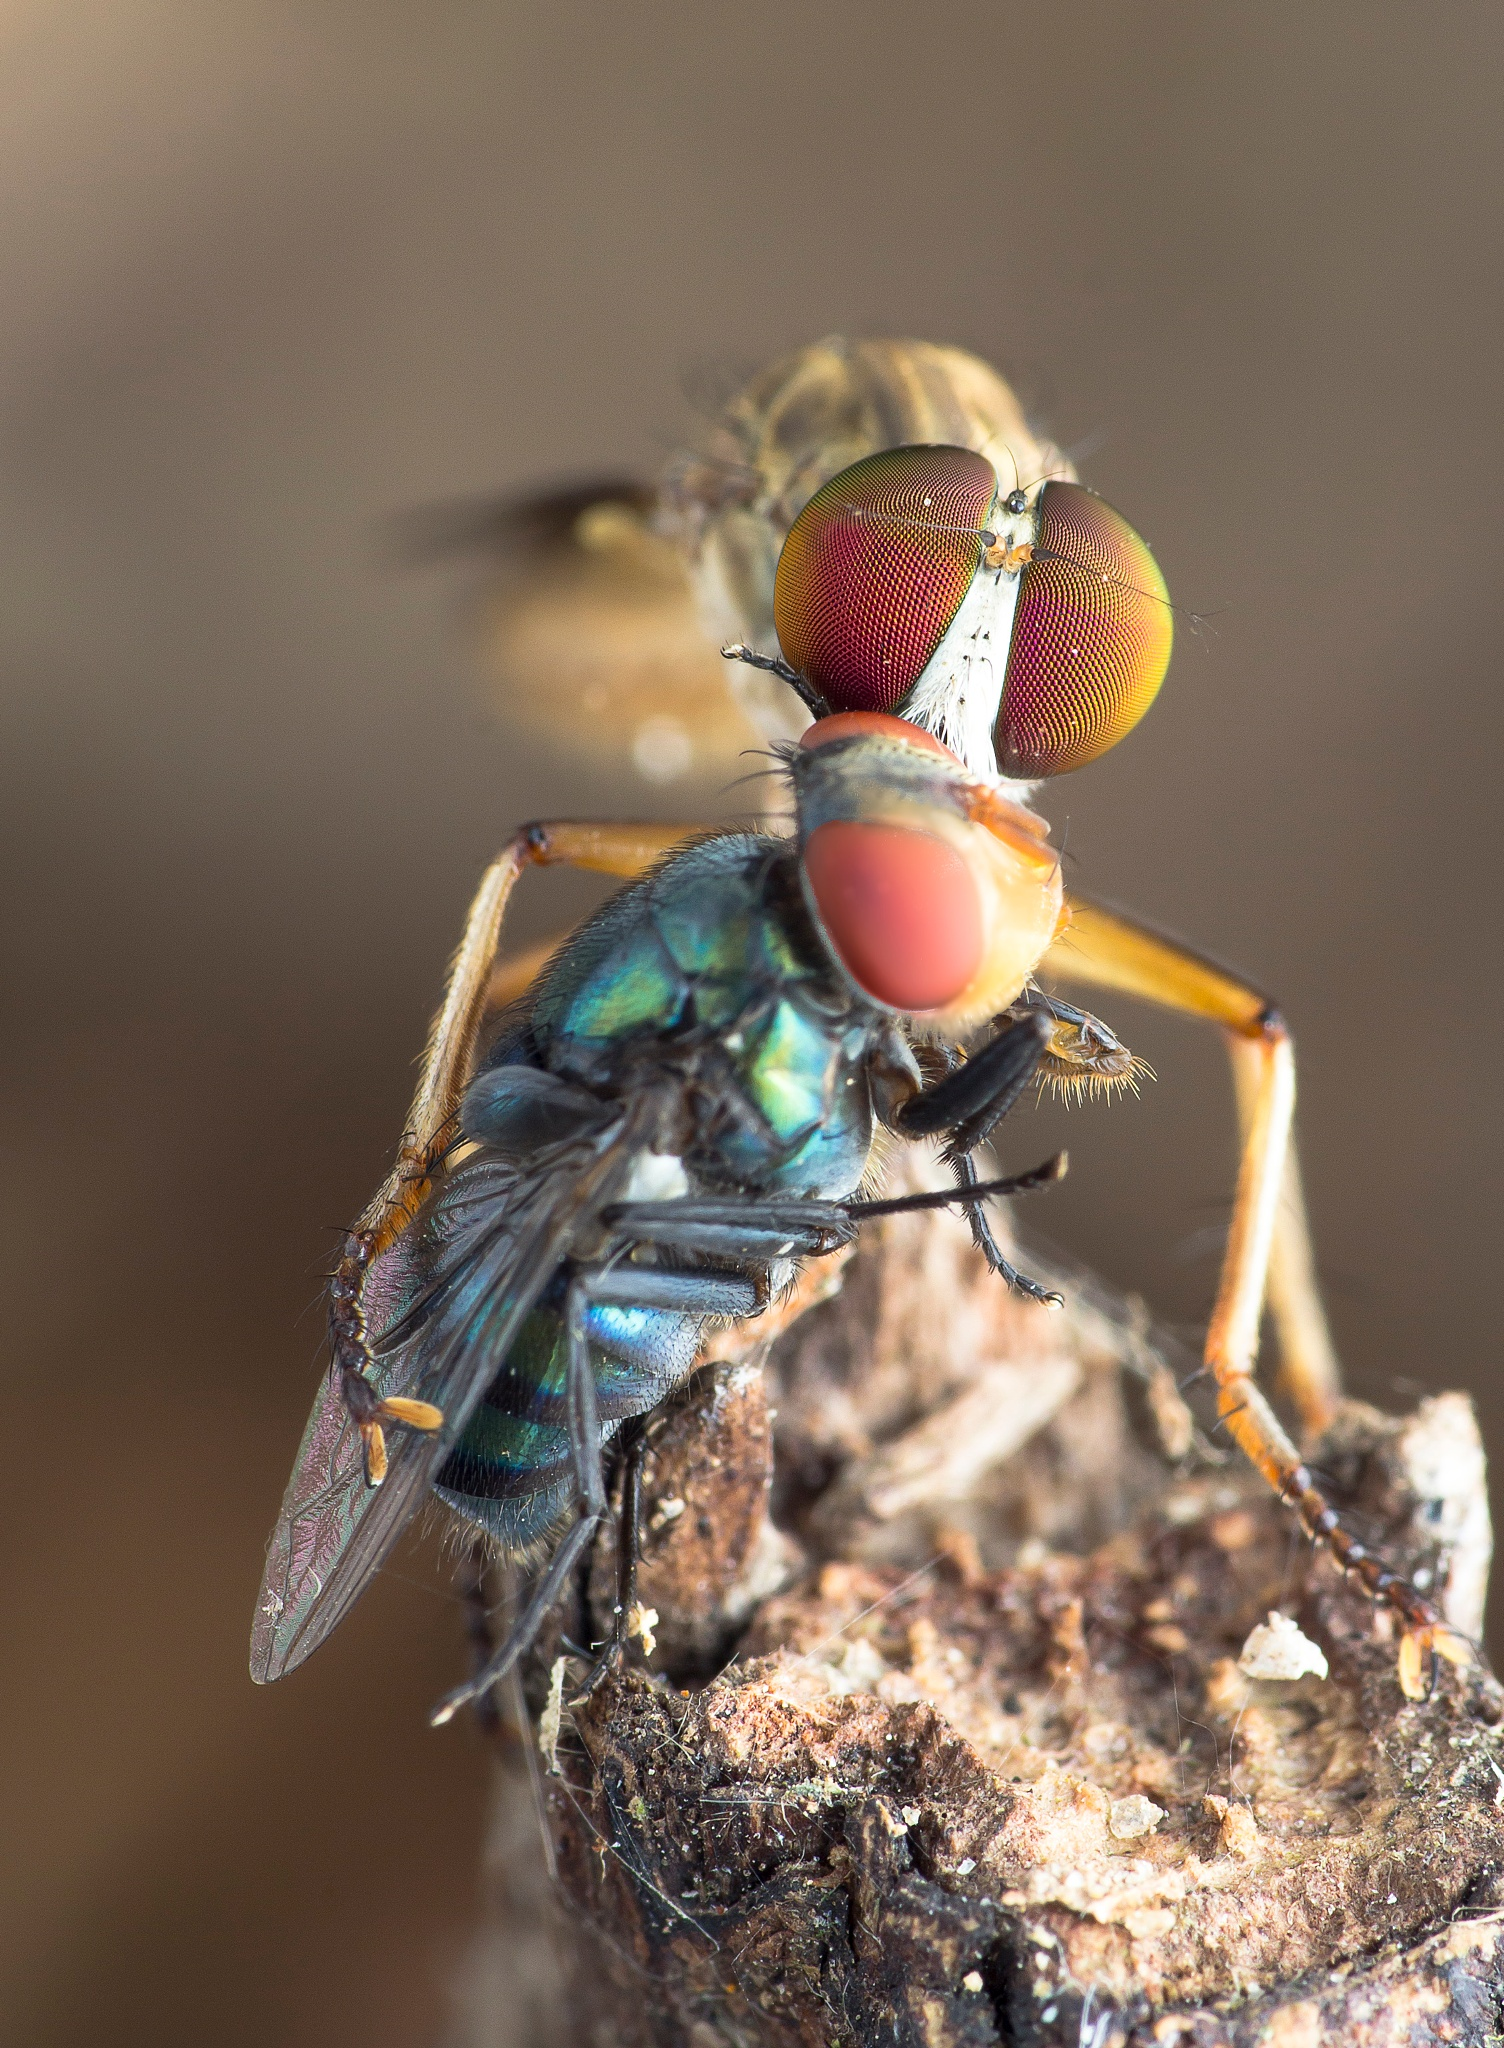 Robber Fly With Prey 160404B by carrot9817